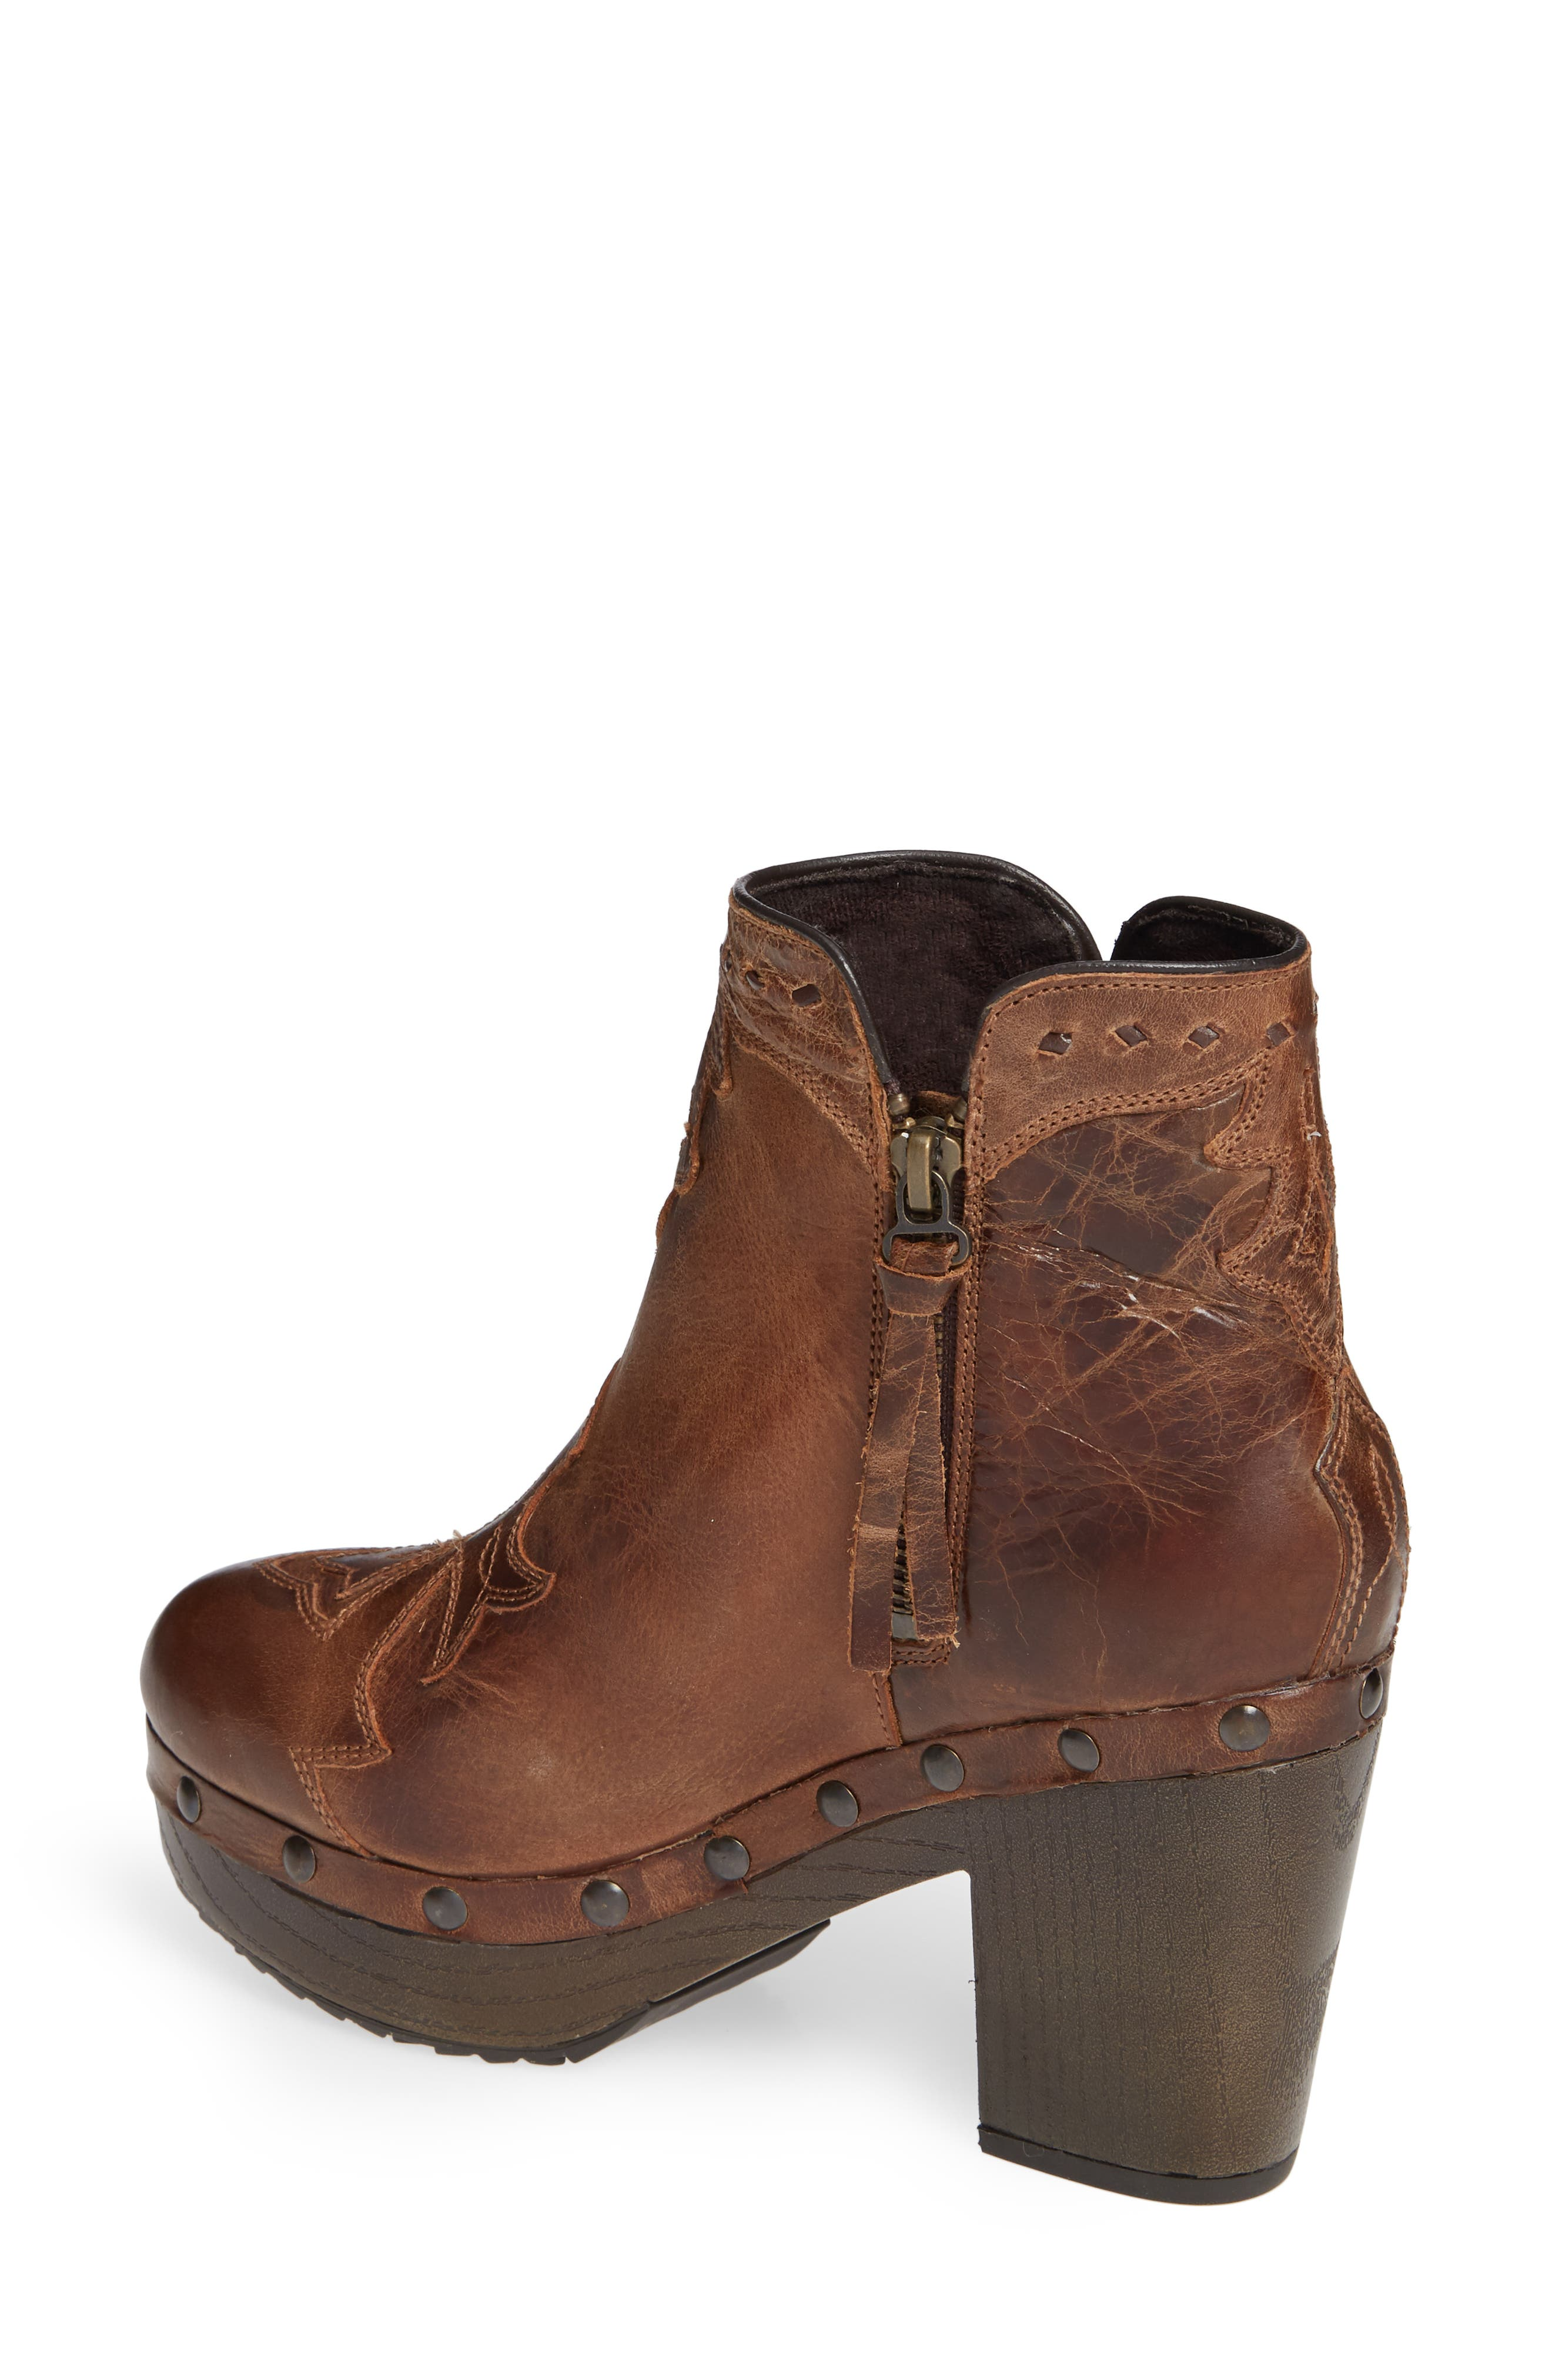 Music City Bootie,                             Alternate thumbnail 2, color,                             CRACKLED TAN LEATHER